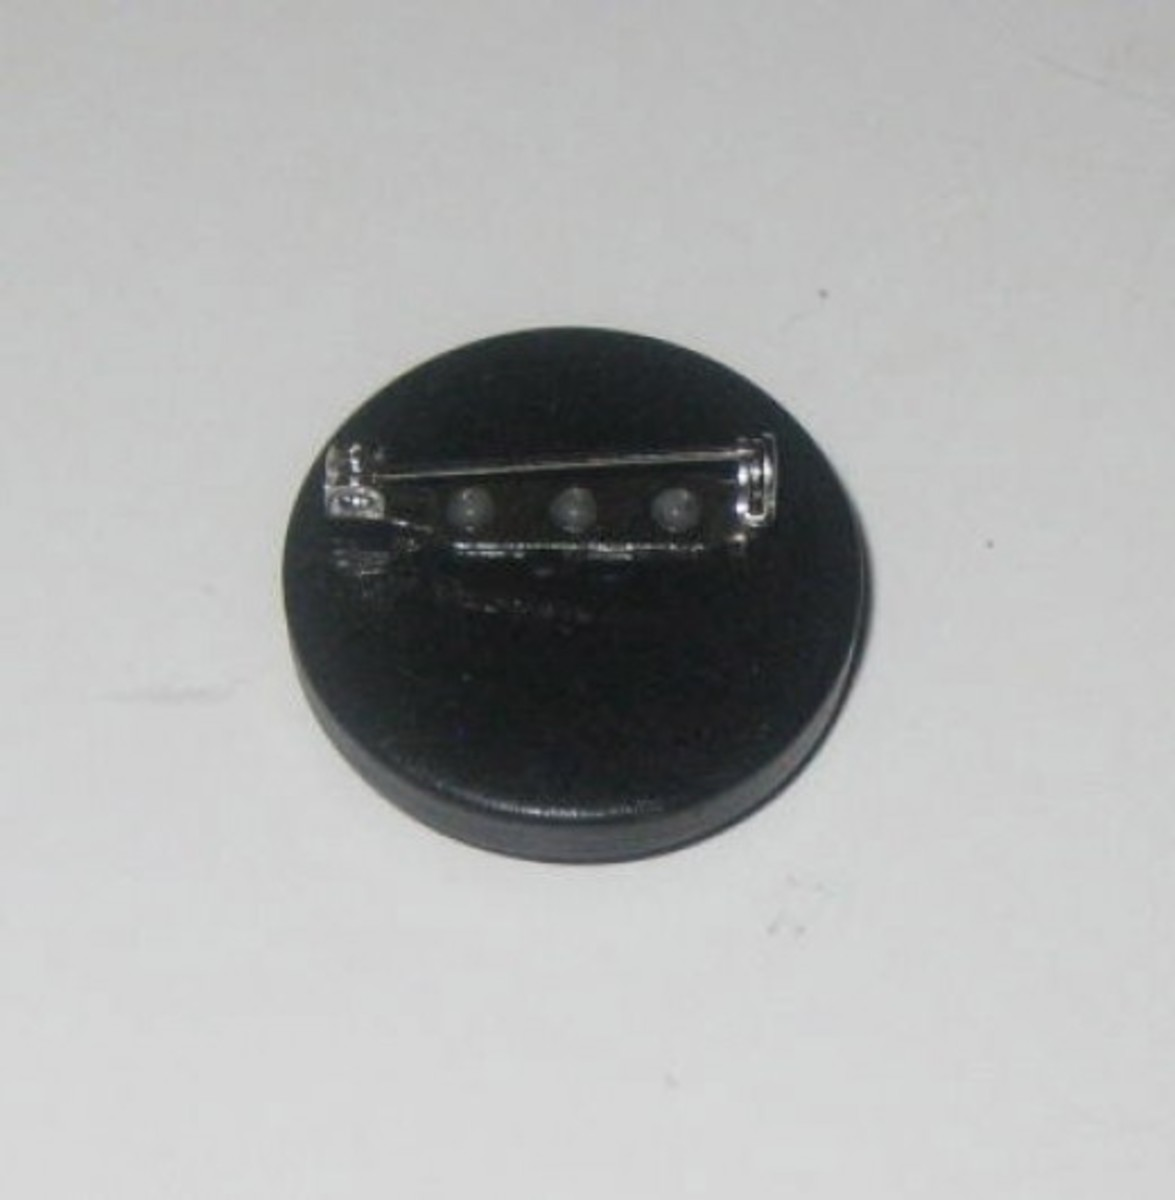 Back of button brooch.